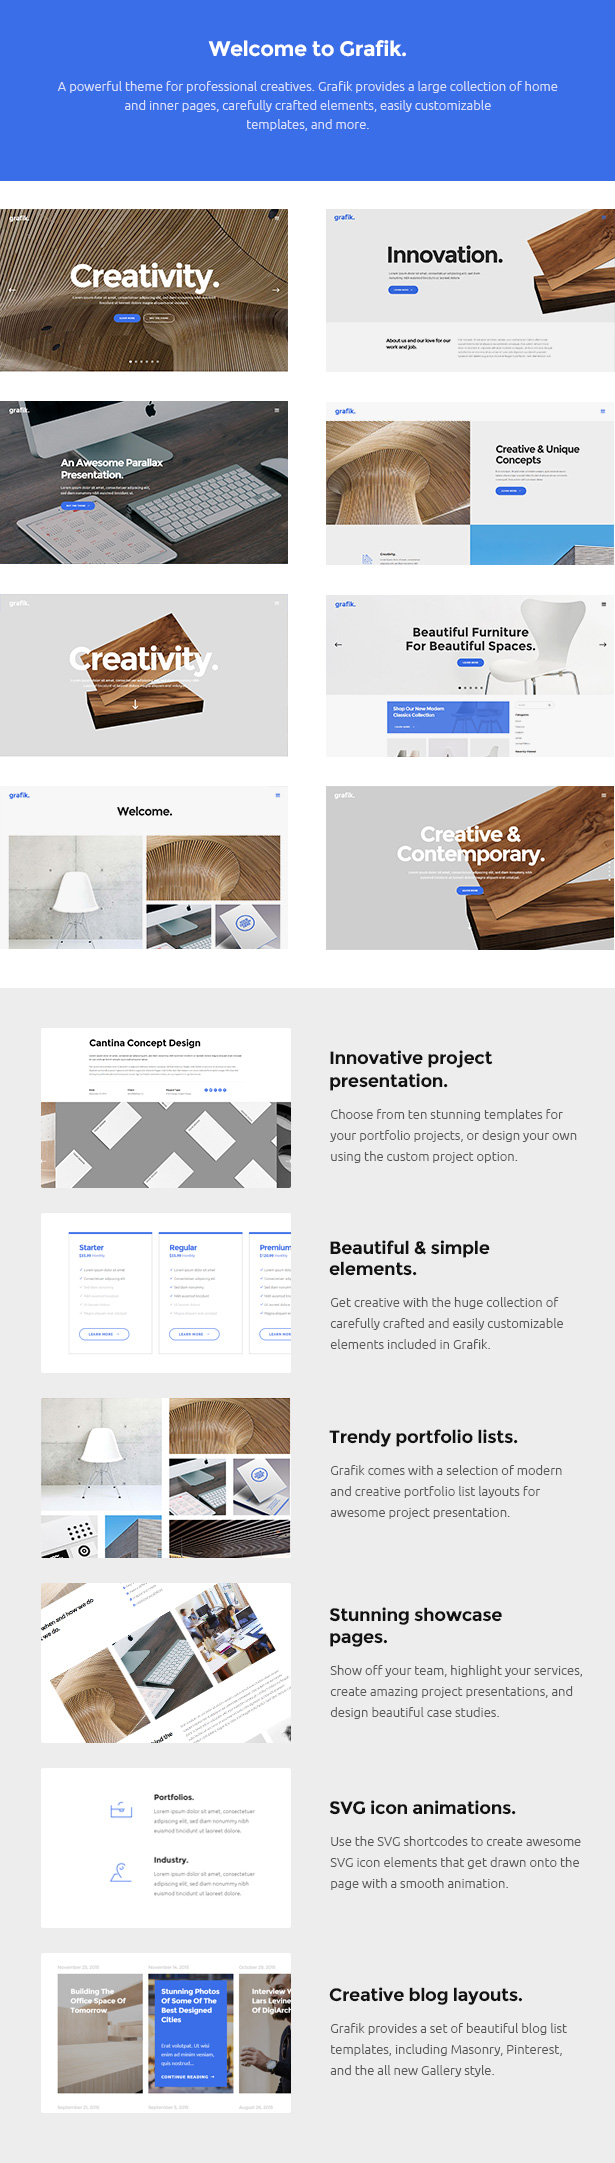 Grafik - Architecture & Design Theme